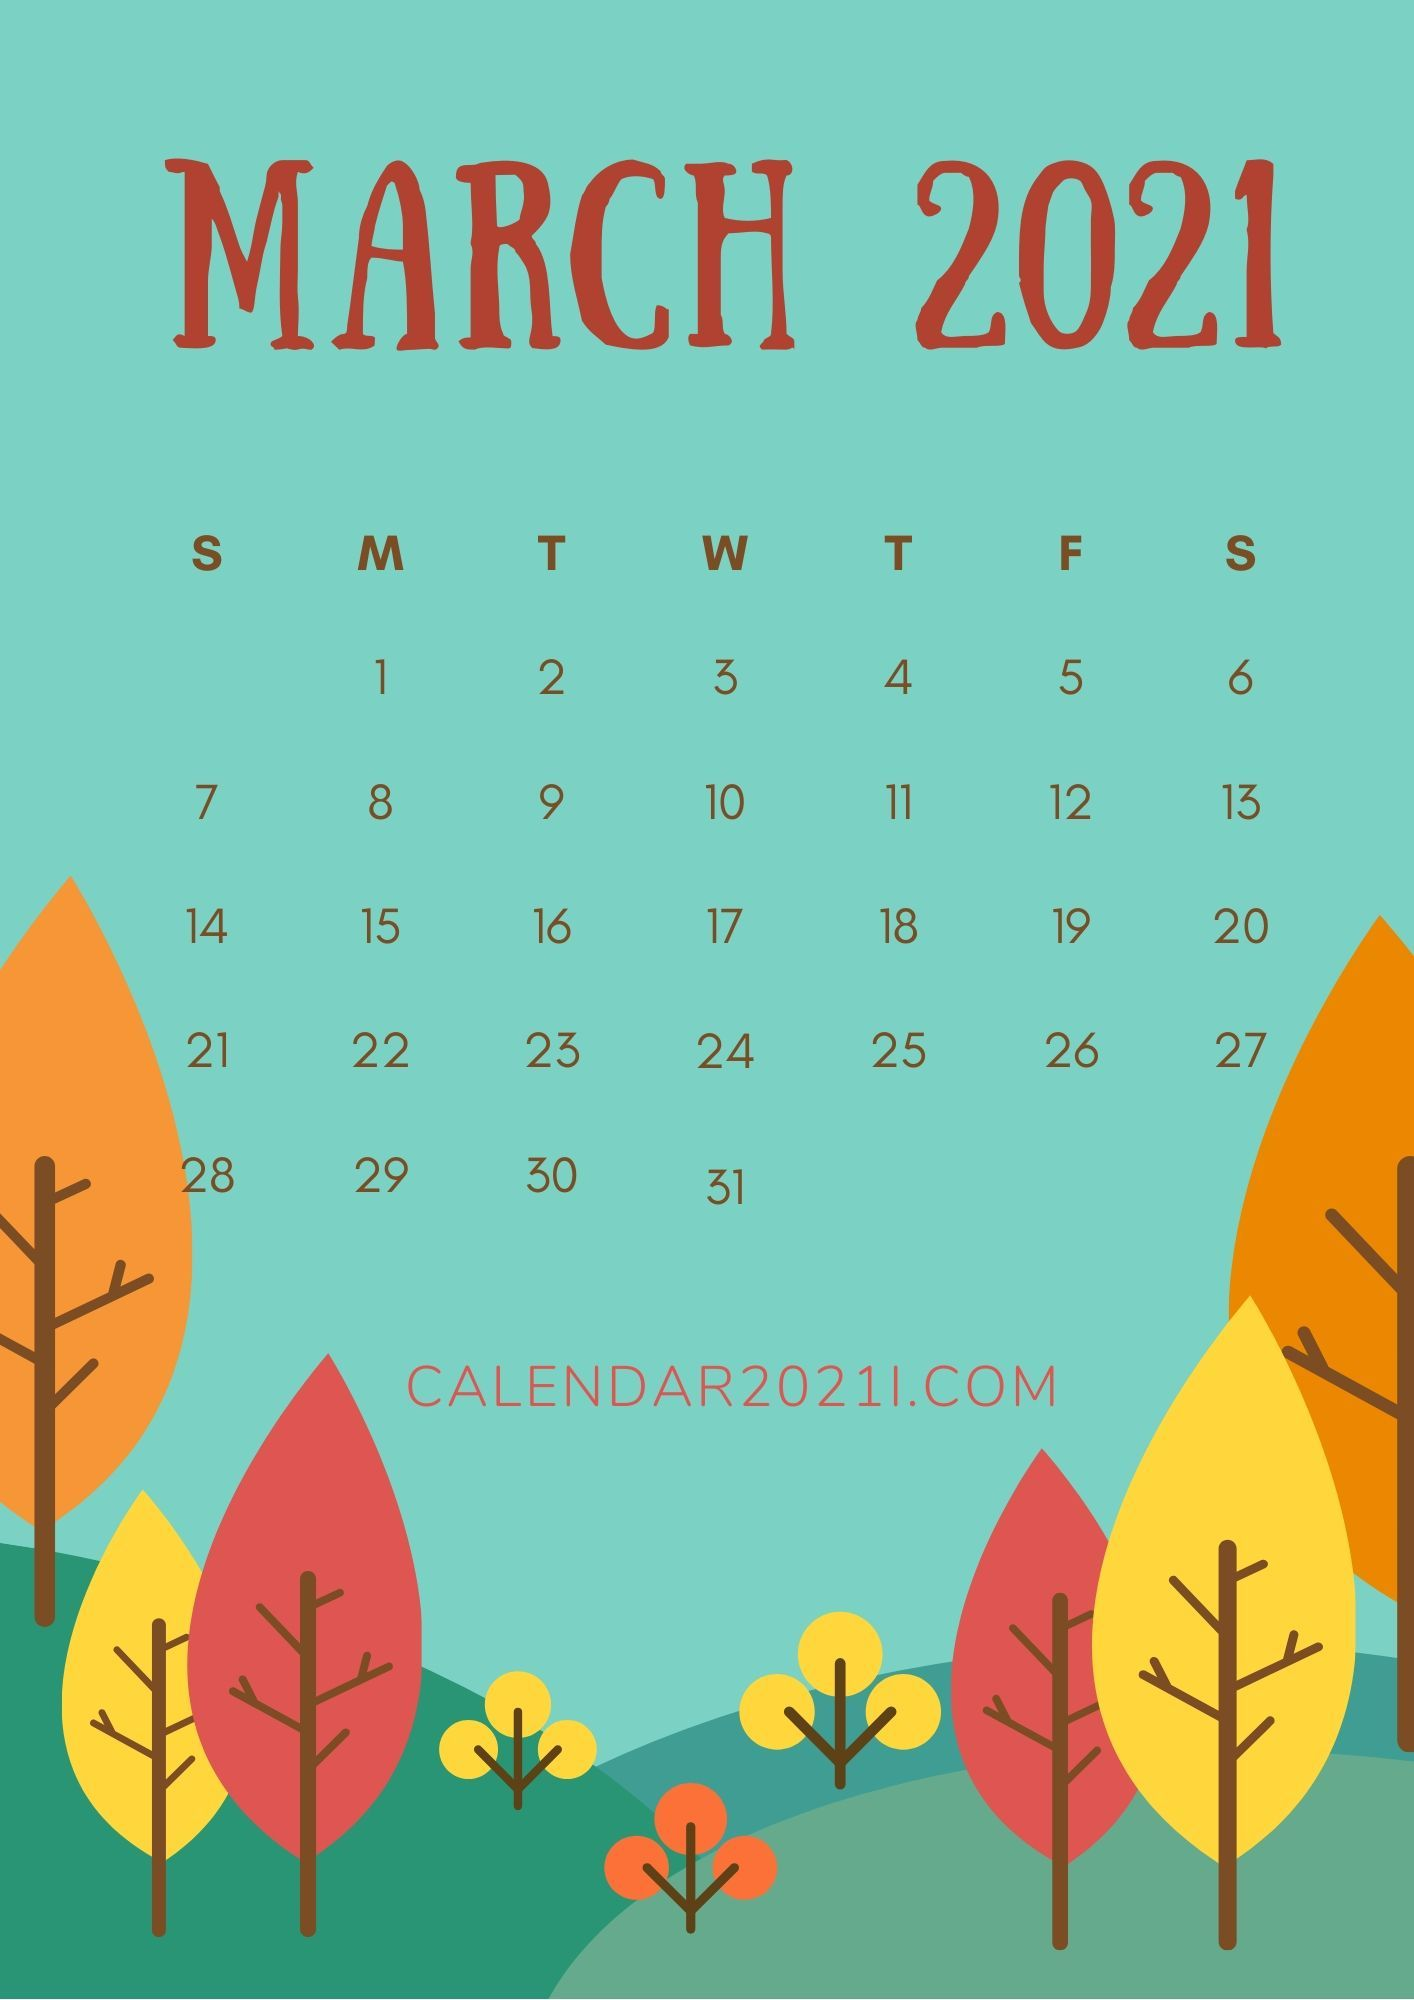 March 2021 iPhone Calendar Wallpaper Printable calendar design